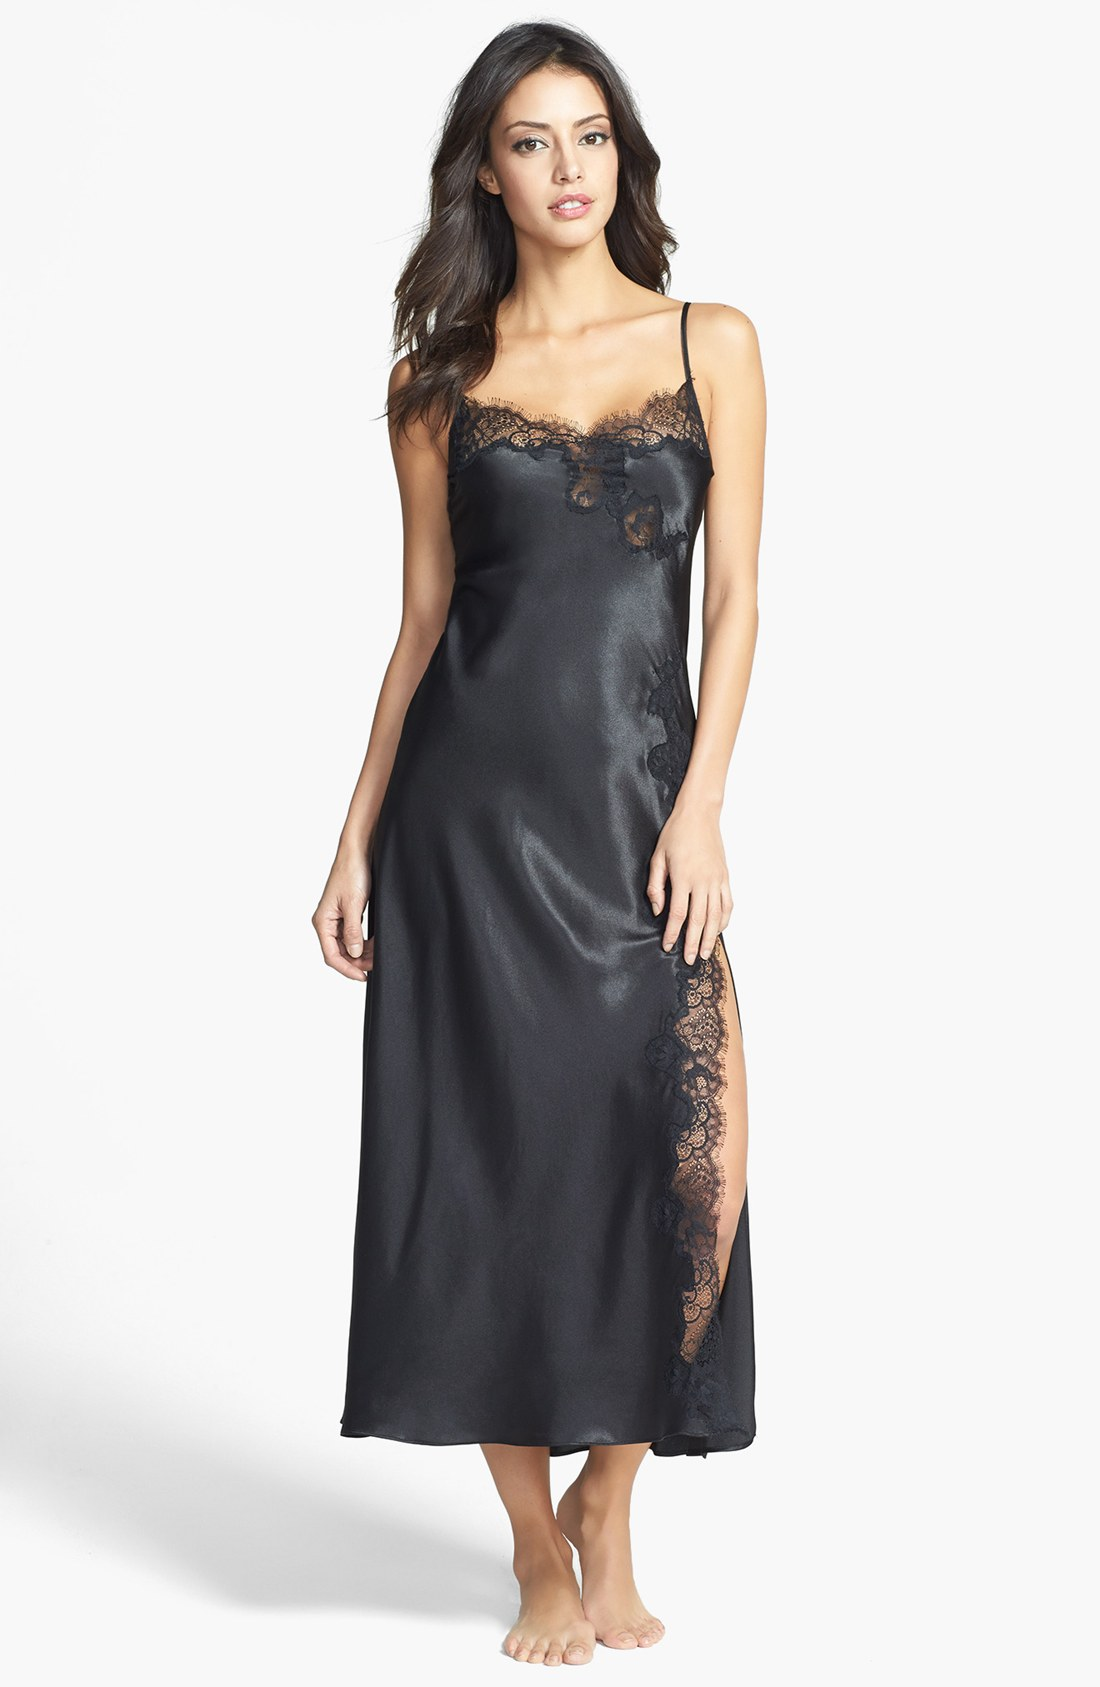 Black Silk Nightgowns for Women Nightwear for women doesn't get much more luxurious than a long, black, silk nightgown until, of course, you consider the silk chemise. Silk elegantly drapes your body and surrounds you in luxury as you lounge and sleep.